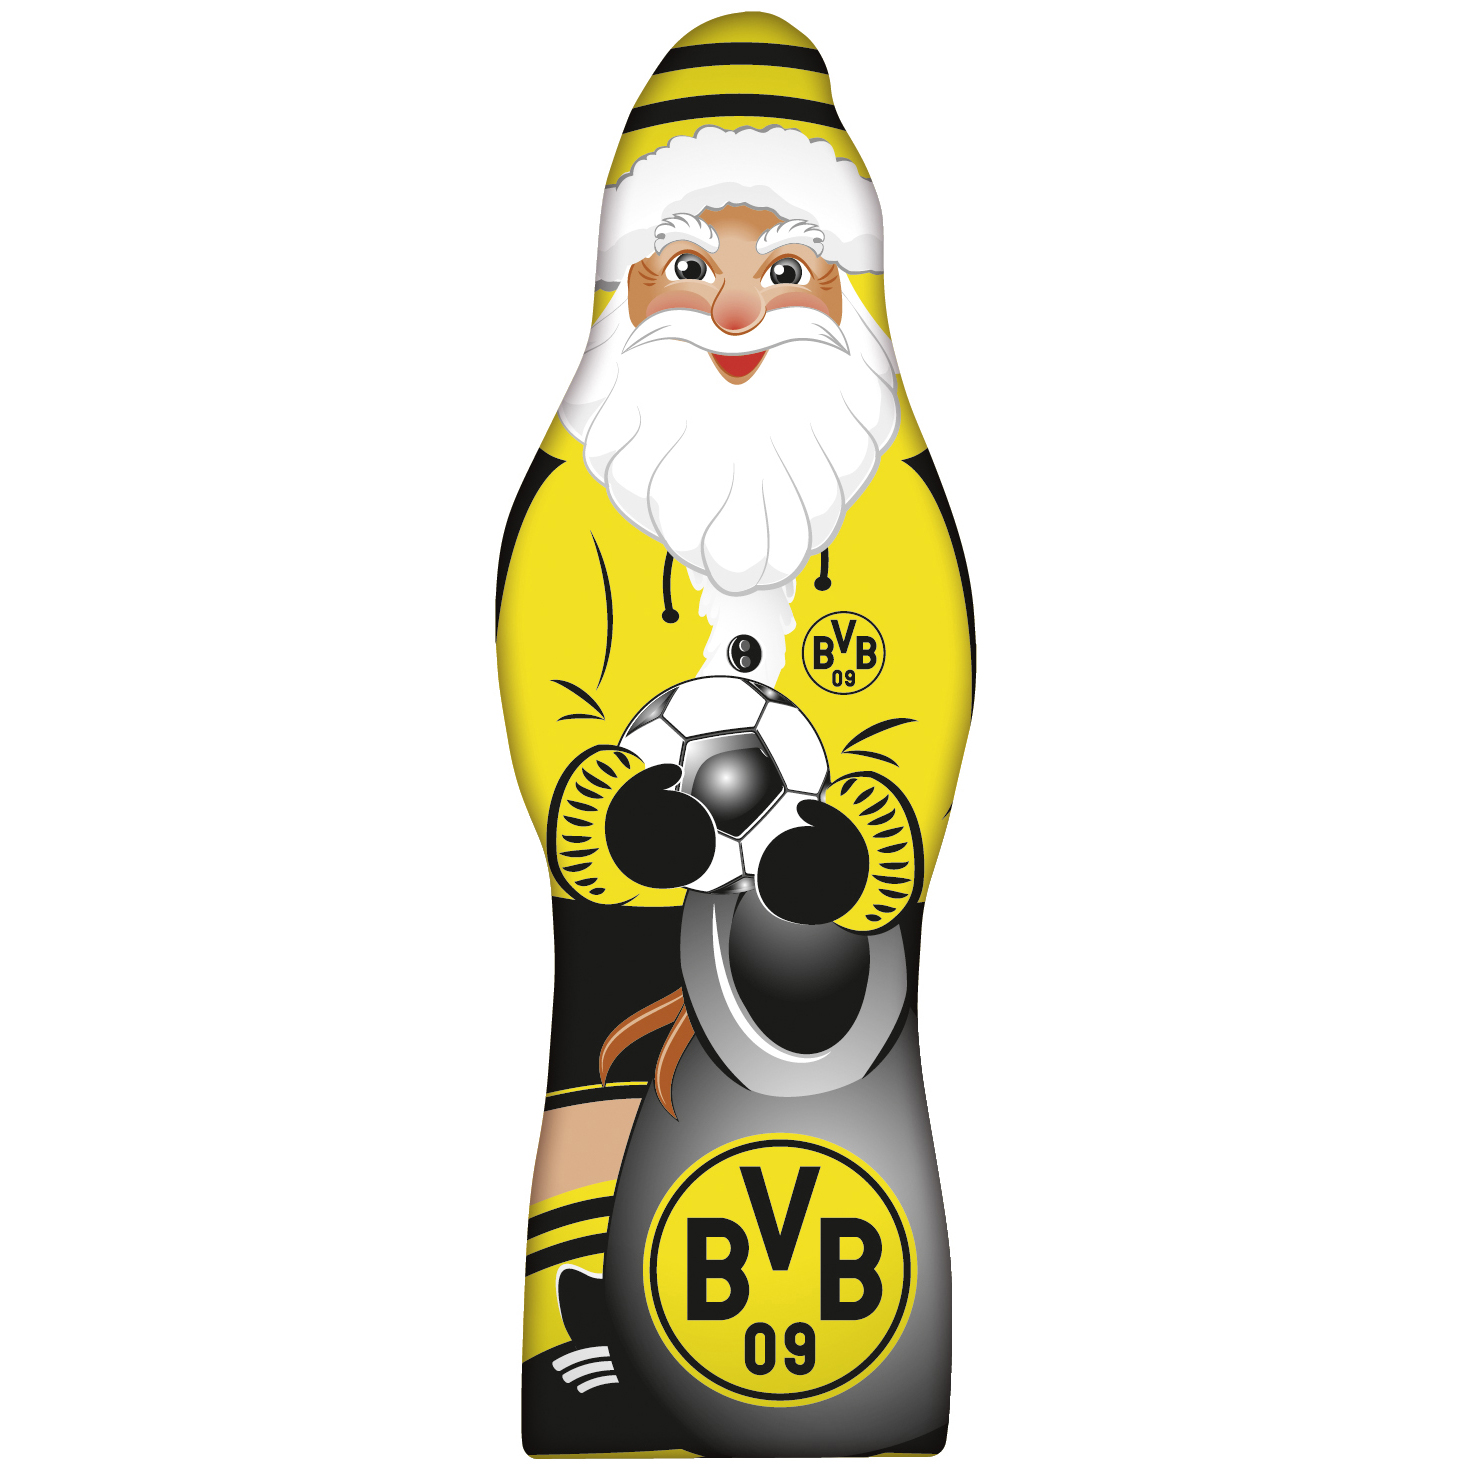 borussia dortmund weihnachtsmann 150g online kaufen im world of sweets shop. Black Bedroom Furniture Sets. Home Design Ideas